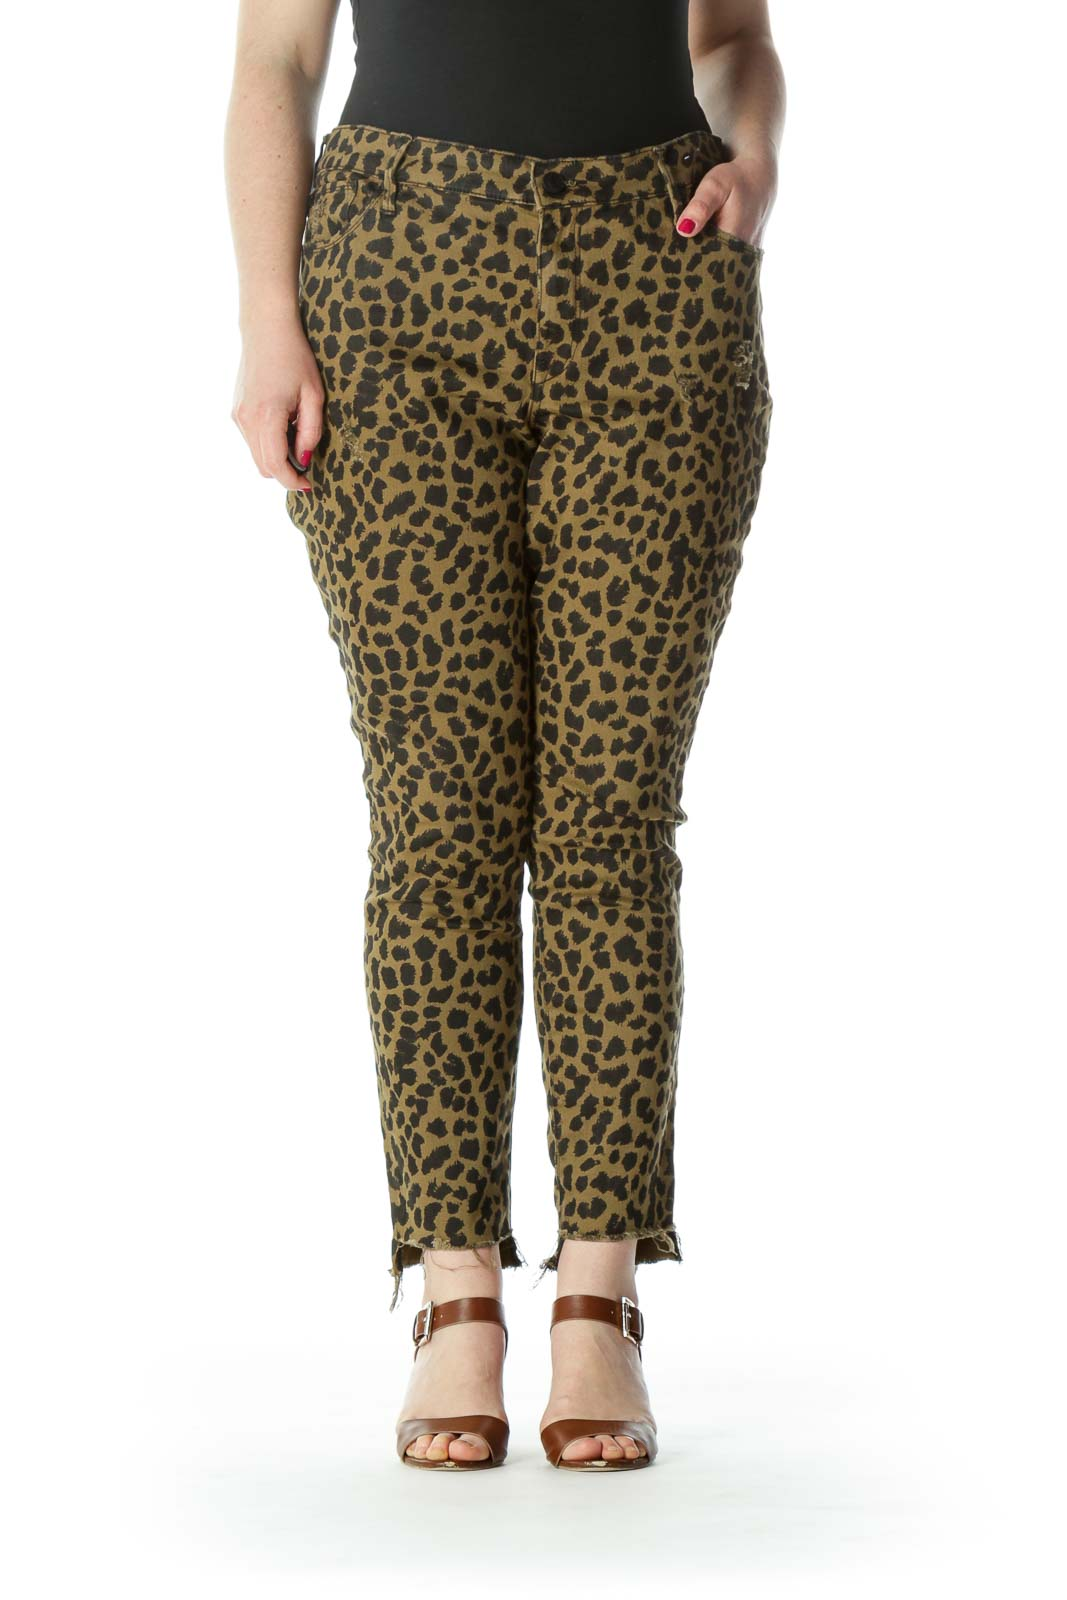 Olive-Green/Black Animal-Print Step Raw-Hem Stretch Denim Jeans